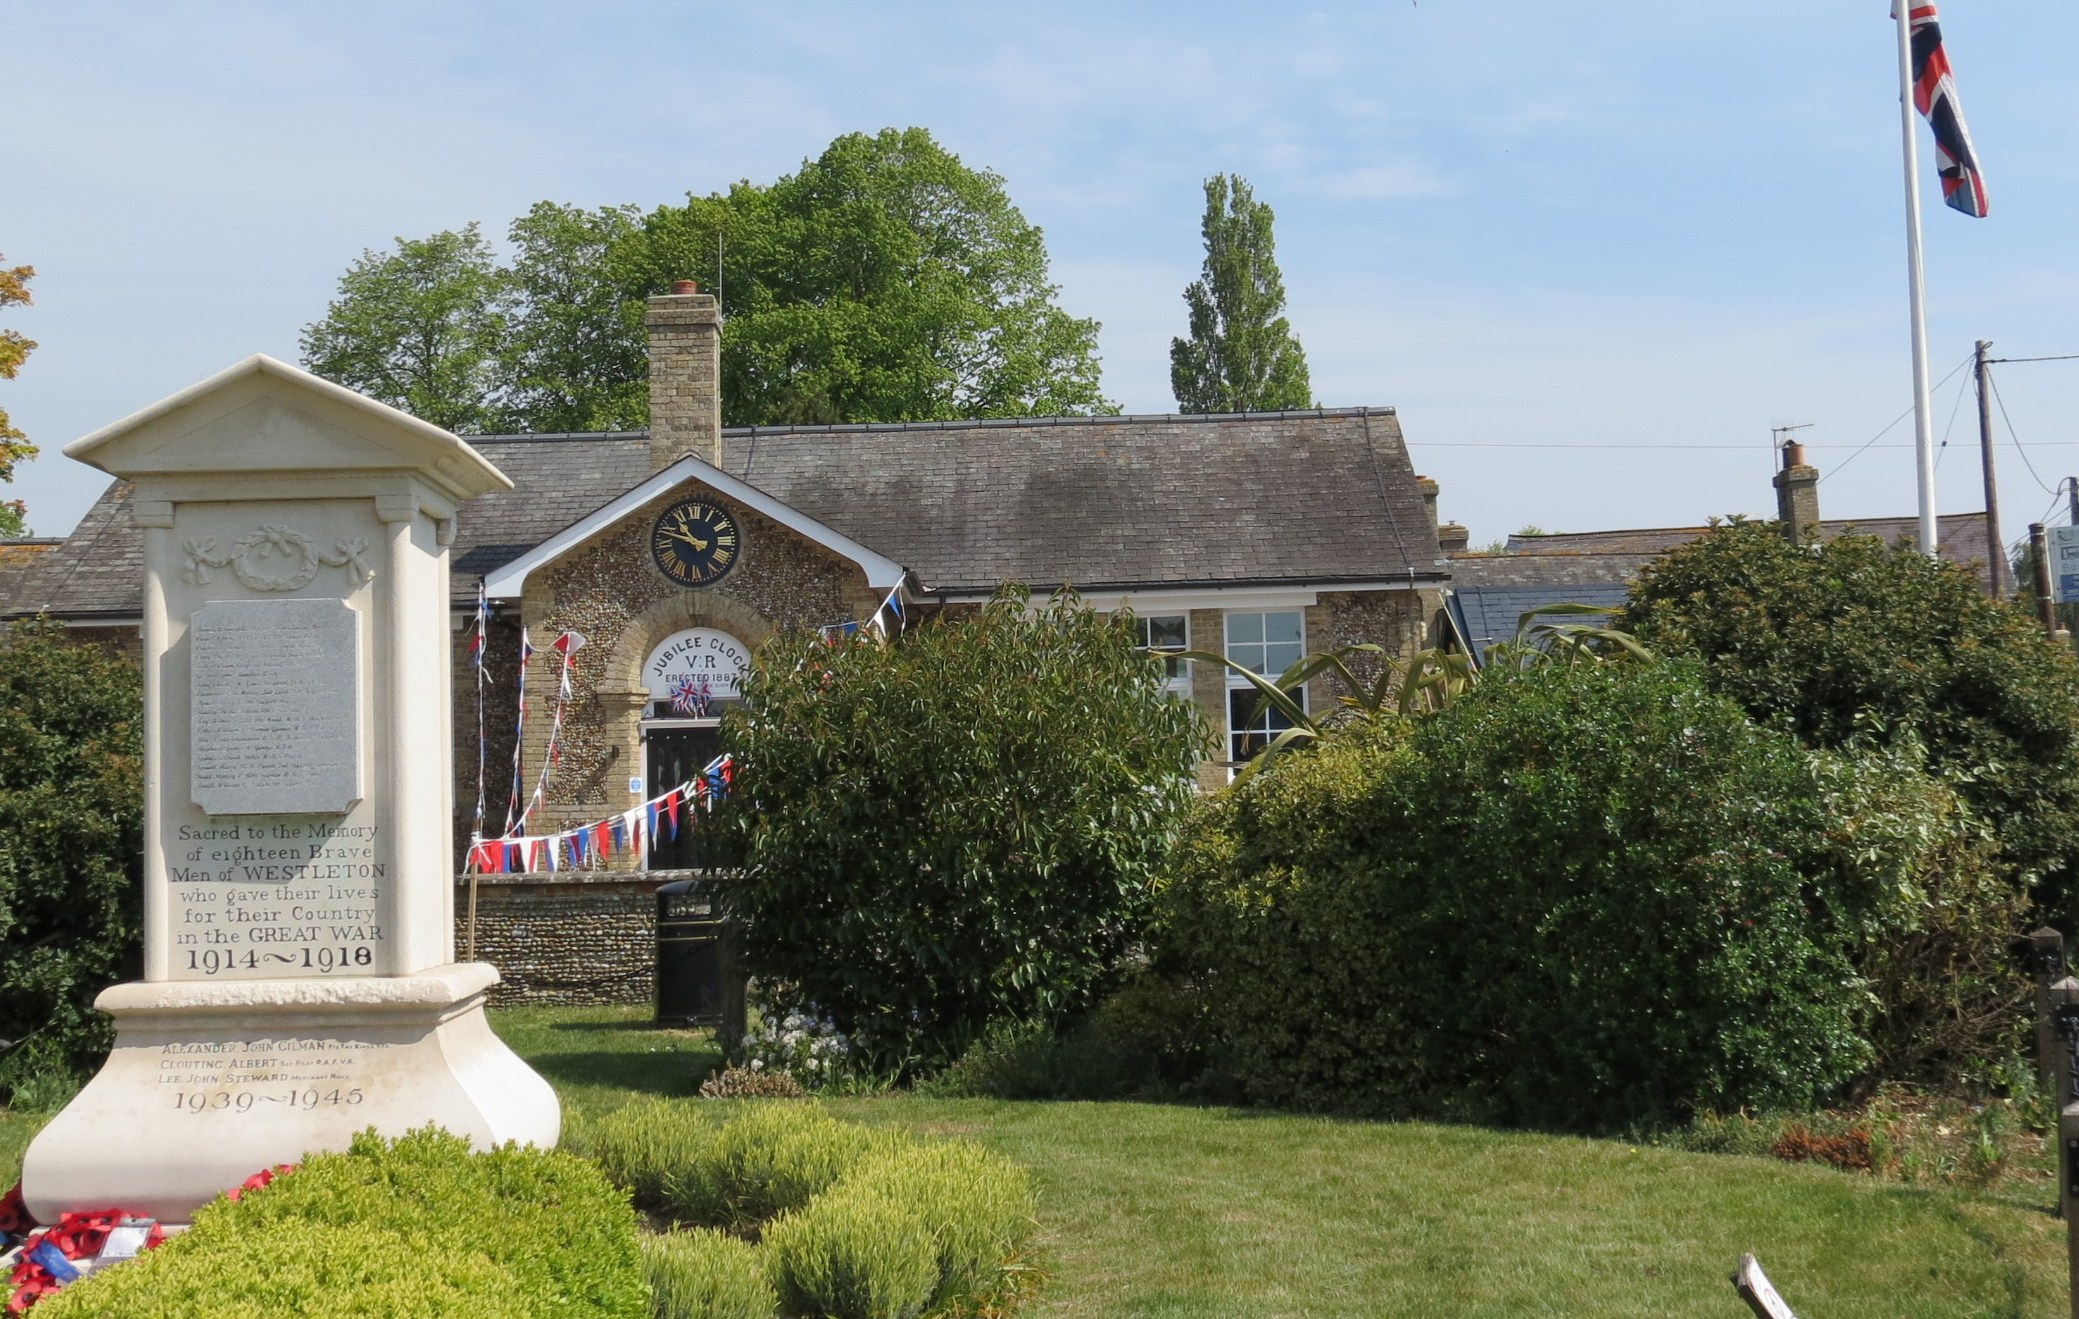 Westleton Village Hall from front, again, showing War memorial and VE Day decorations.